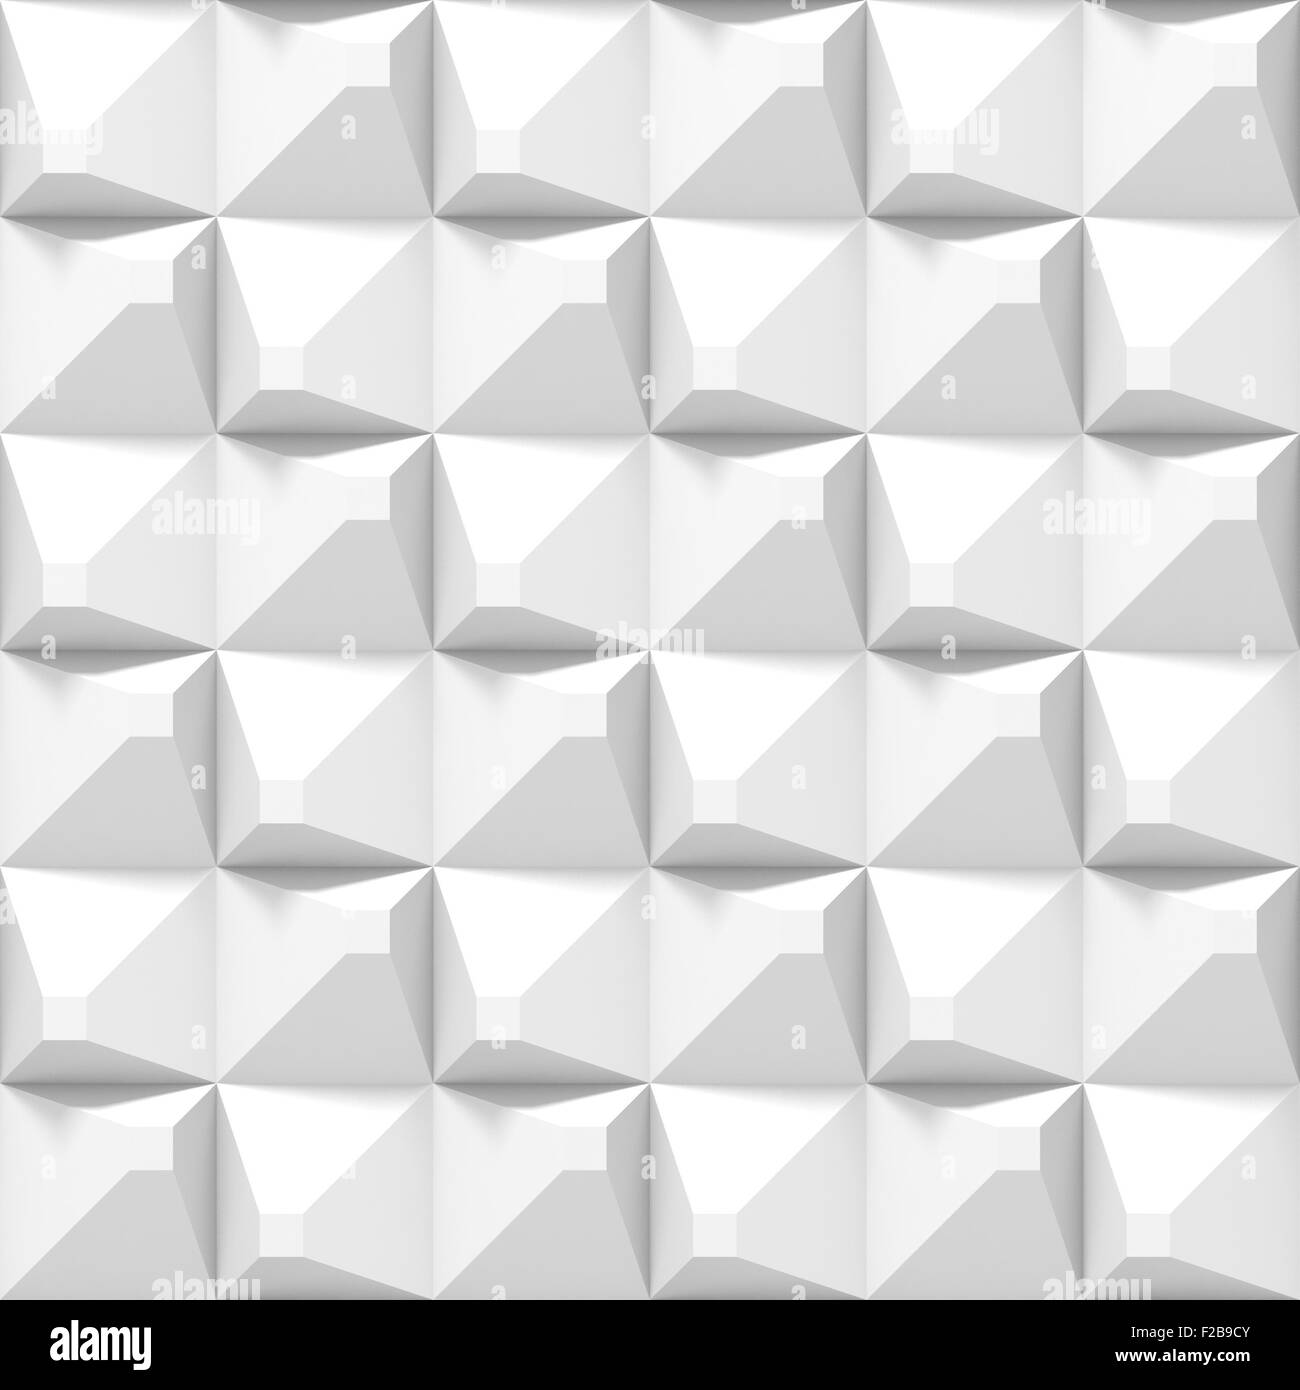 white gray seamless texture raster modern background can be used